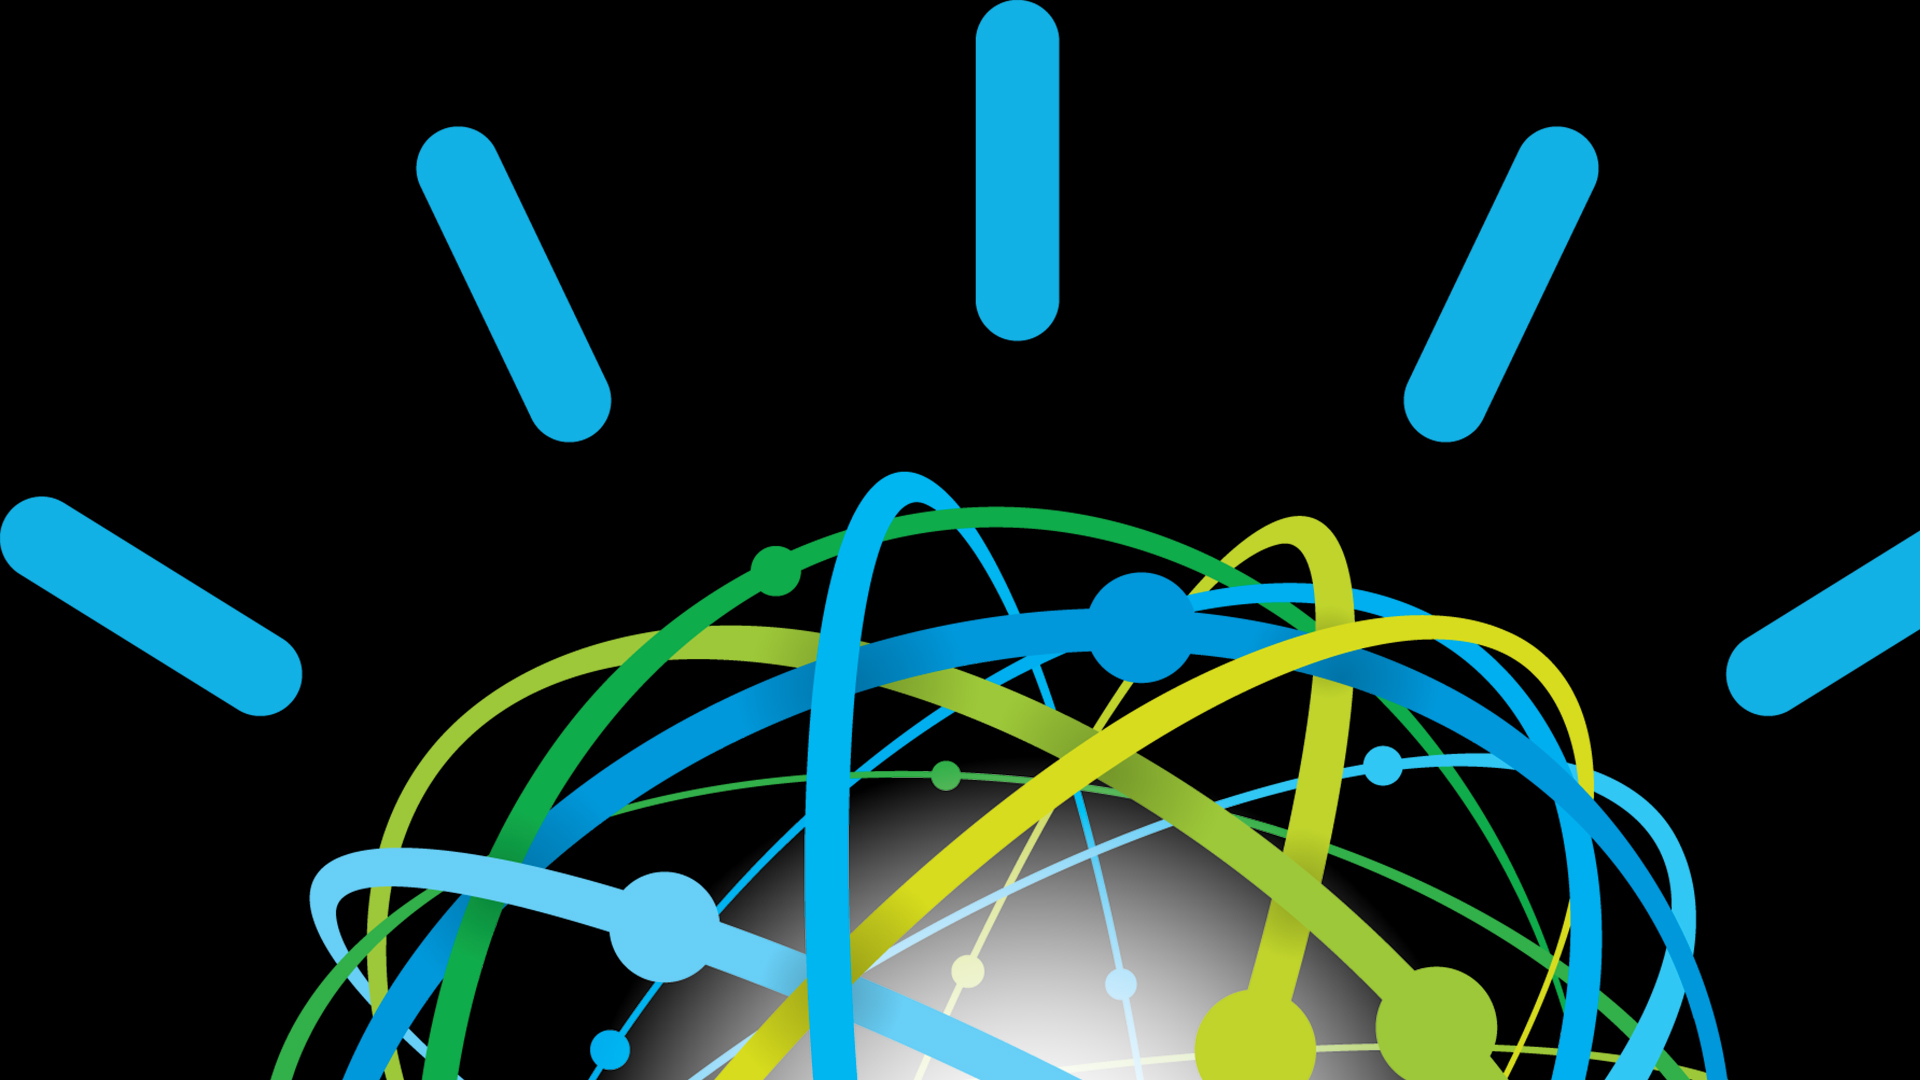 IBM's Watson helps turbocharge Rocket Fuel with more brainpower